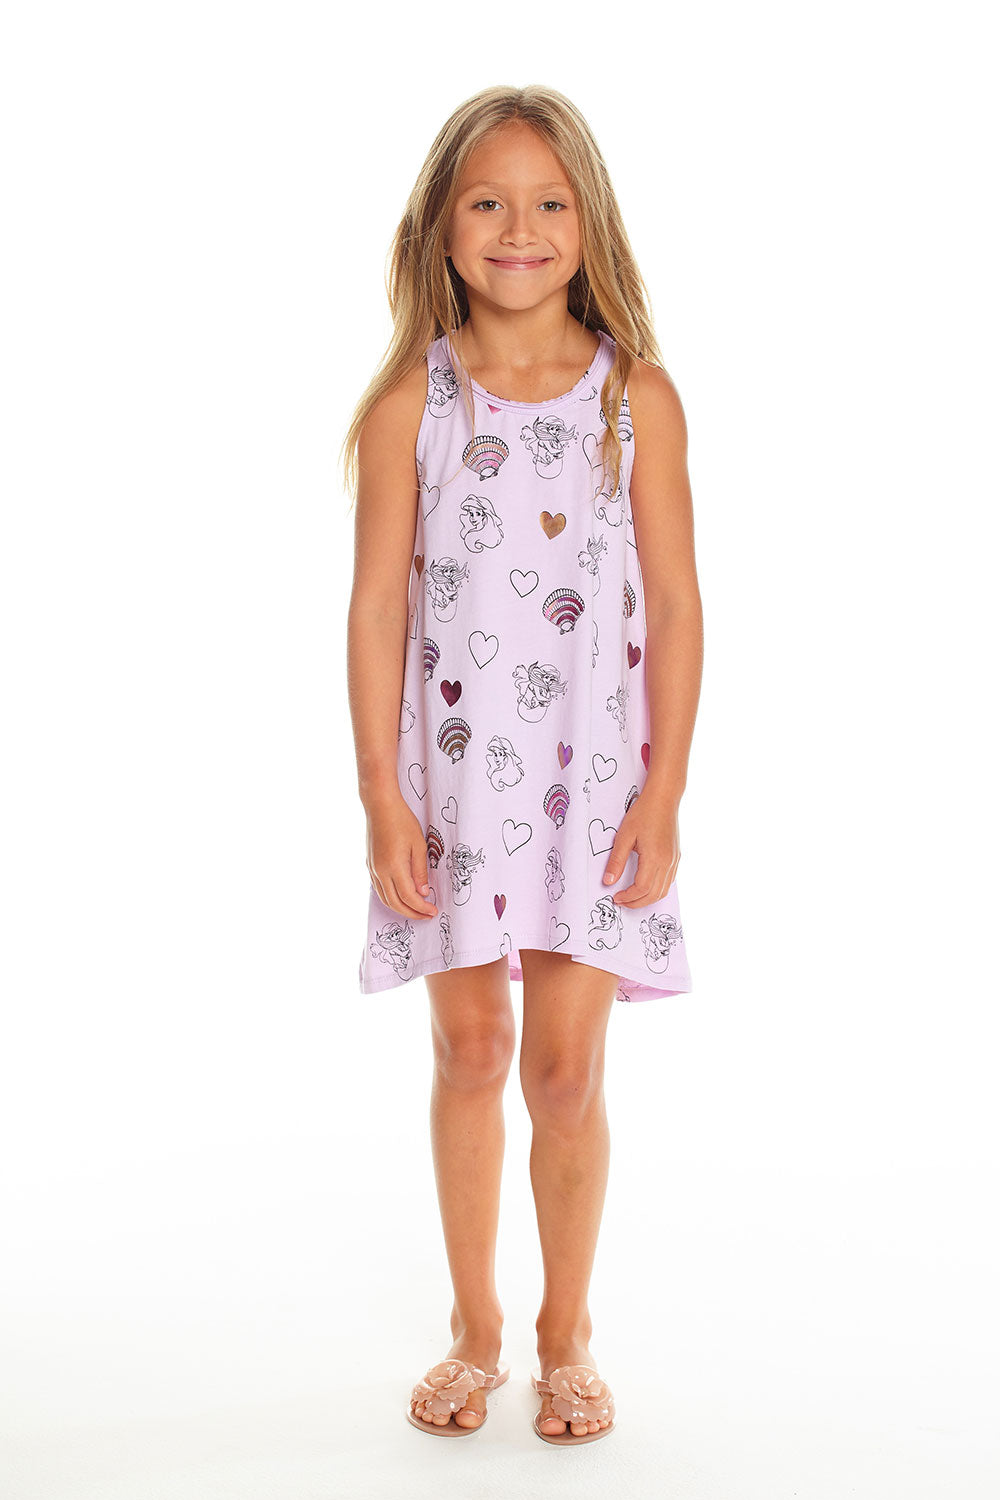 Disney's The Little Mermaid - Mermaid Hearts & Shells BCA - chaserbrand